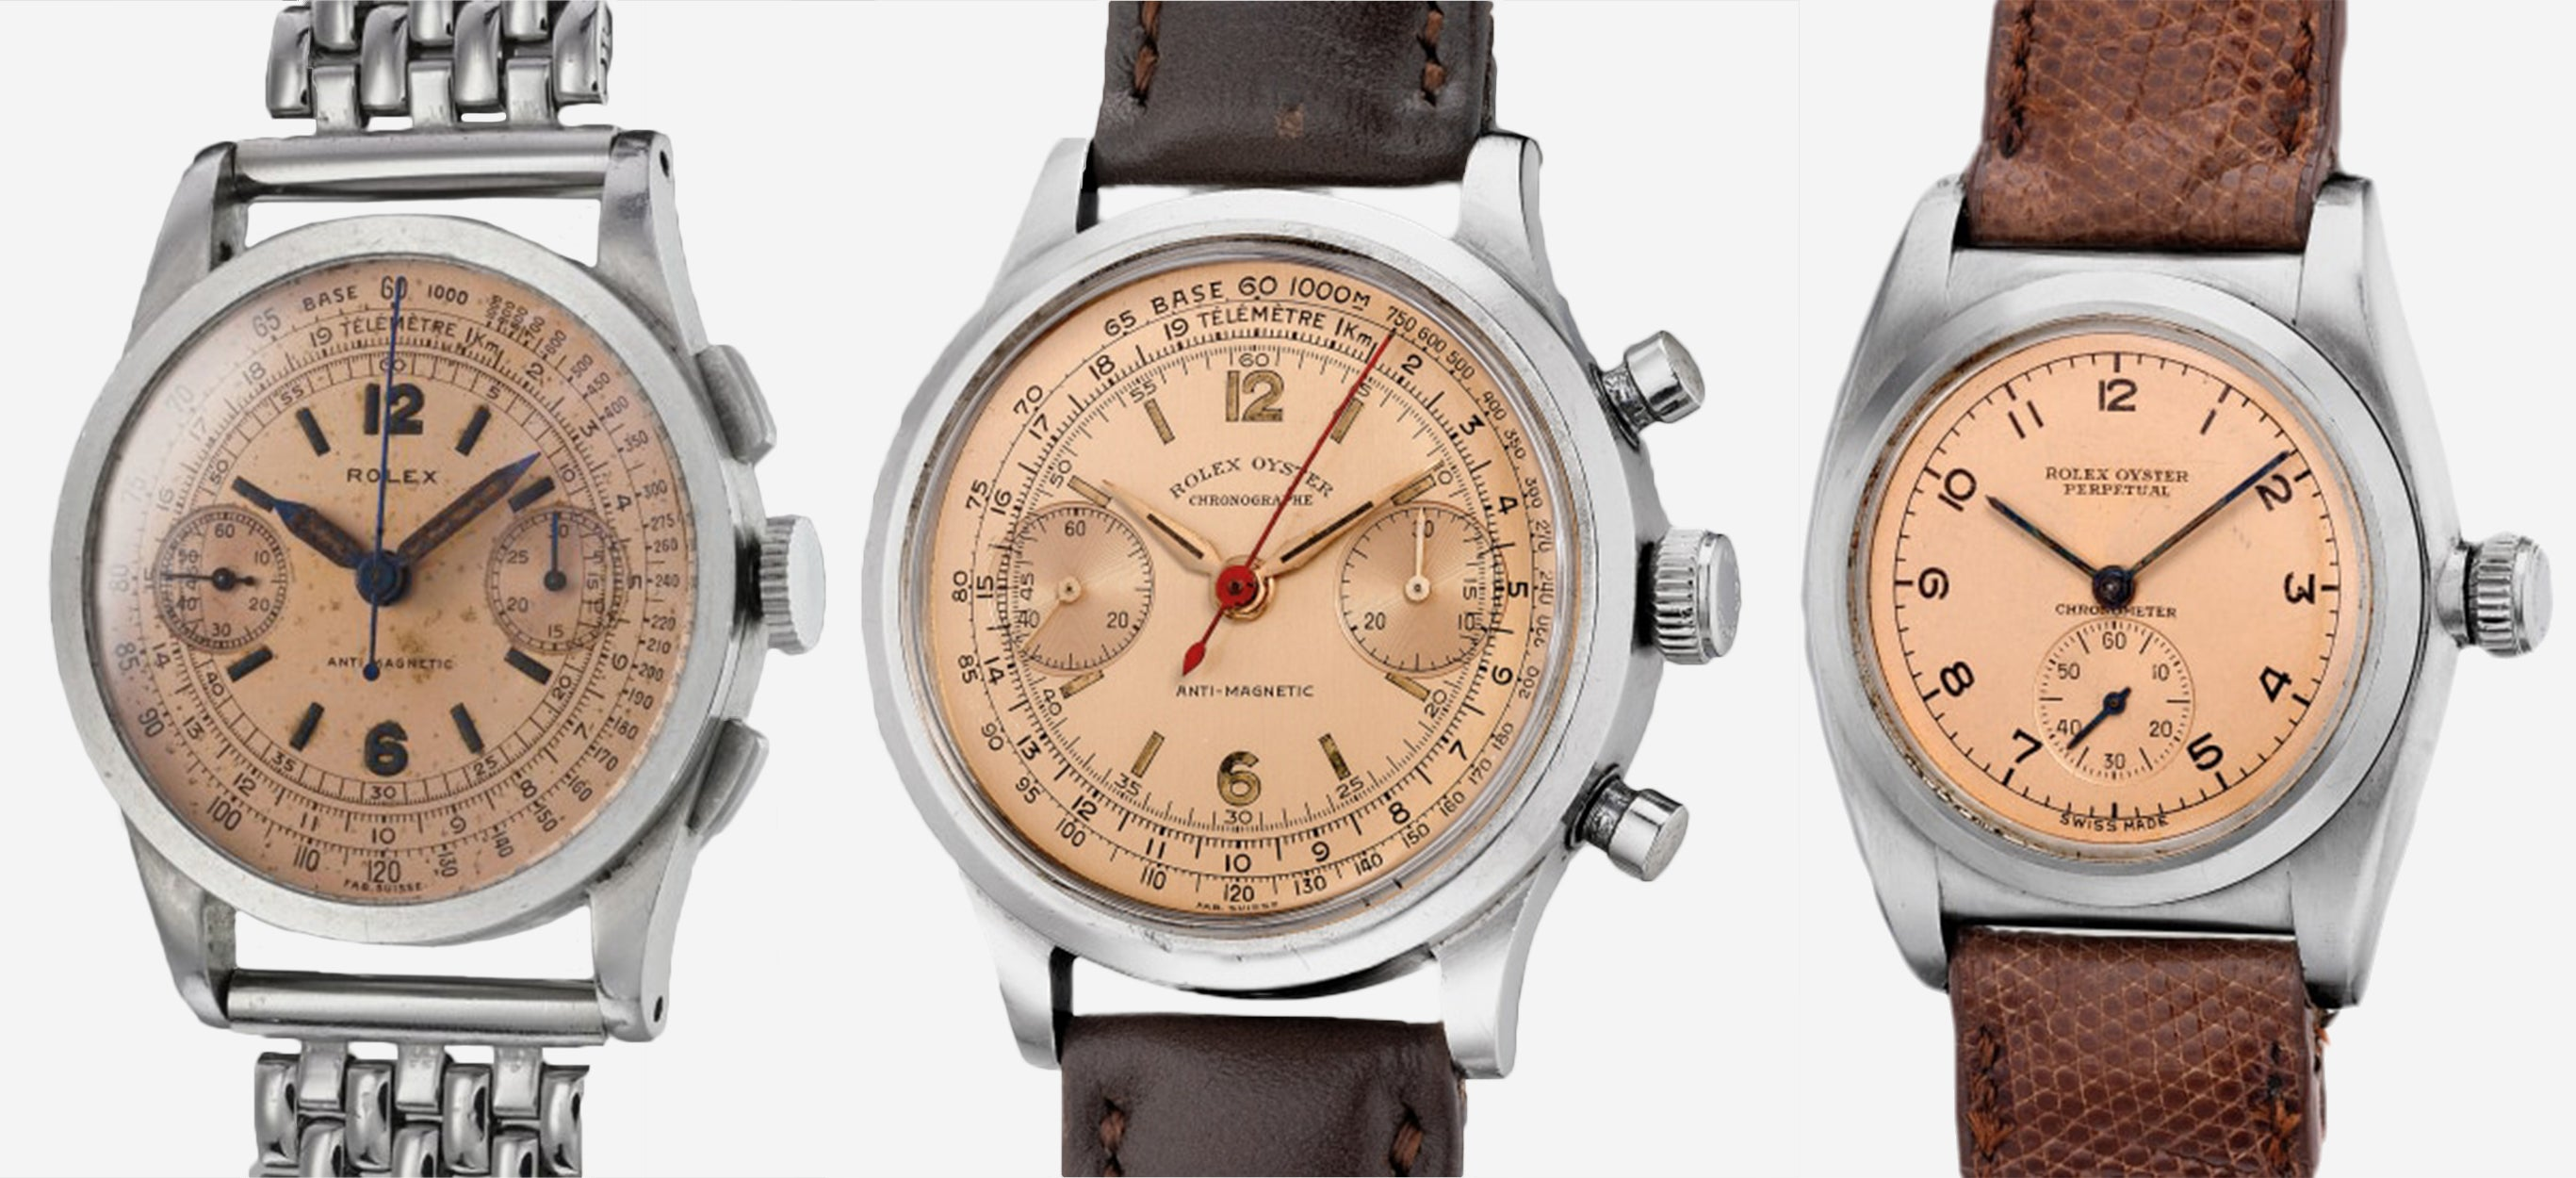 A Rolex Bubbleback and two early chronographs with salmon dials taken on an angle for A Collected Man London